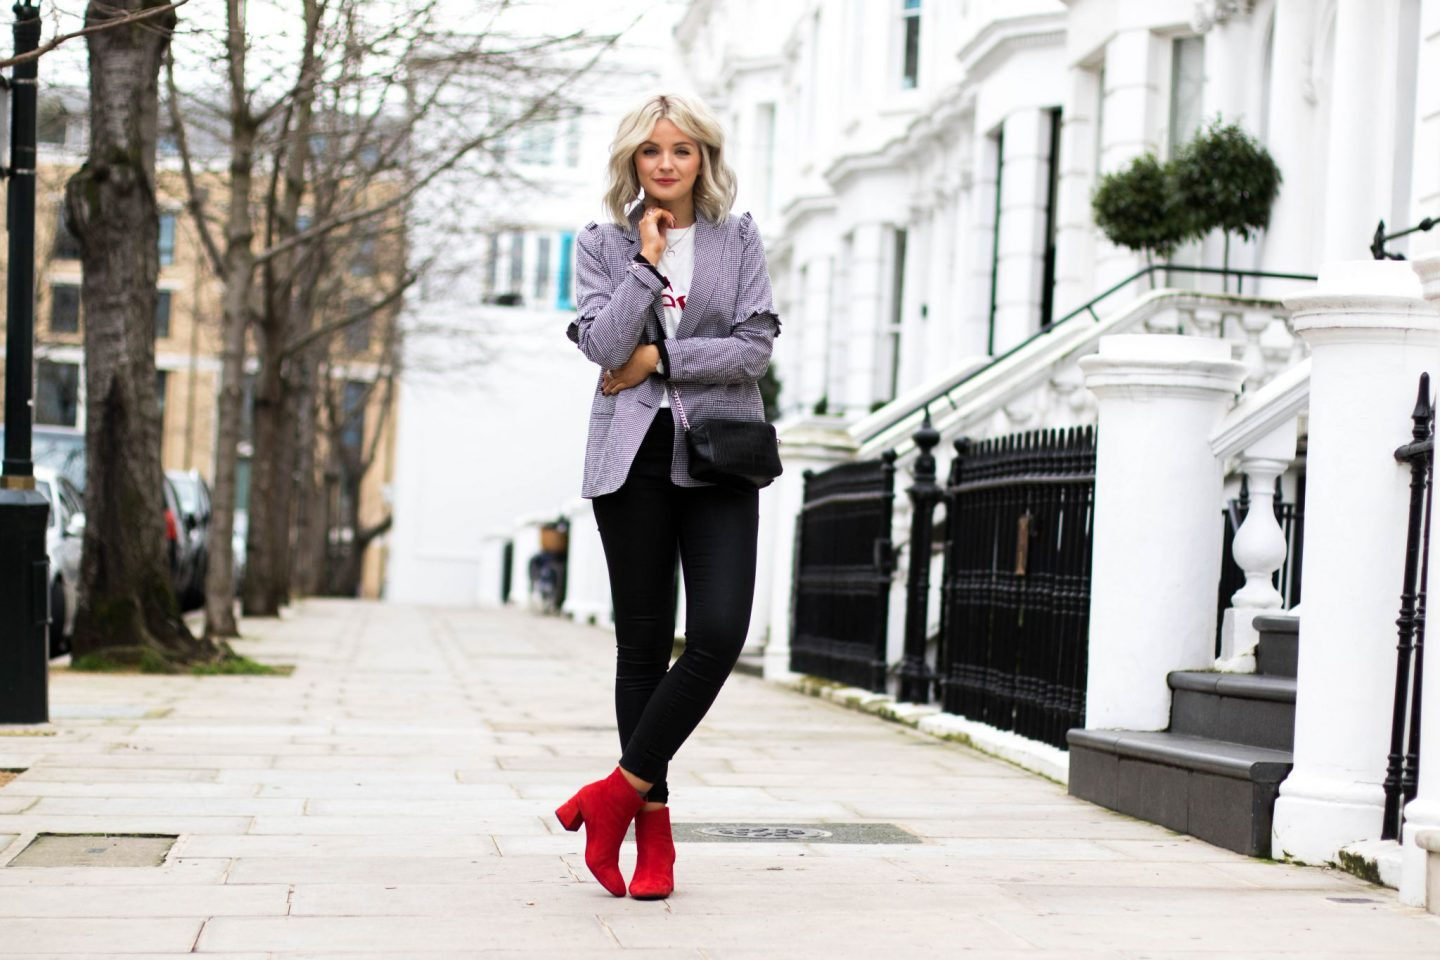 lauras little locket, laura byrnes, gingham blazer, red maggie boots, asos croc body bag, black cross body bag,